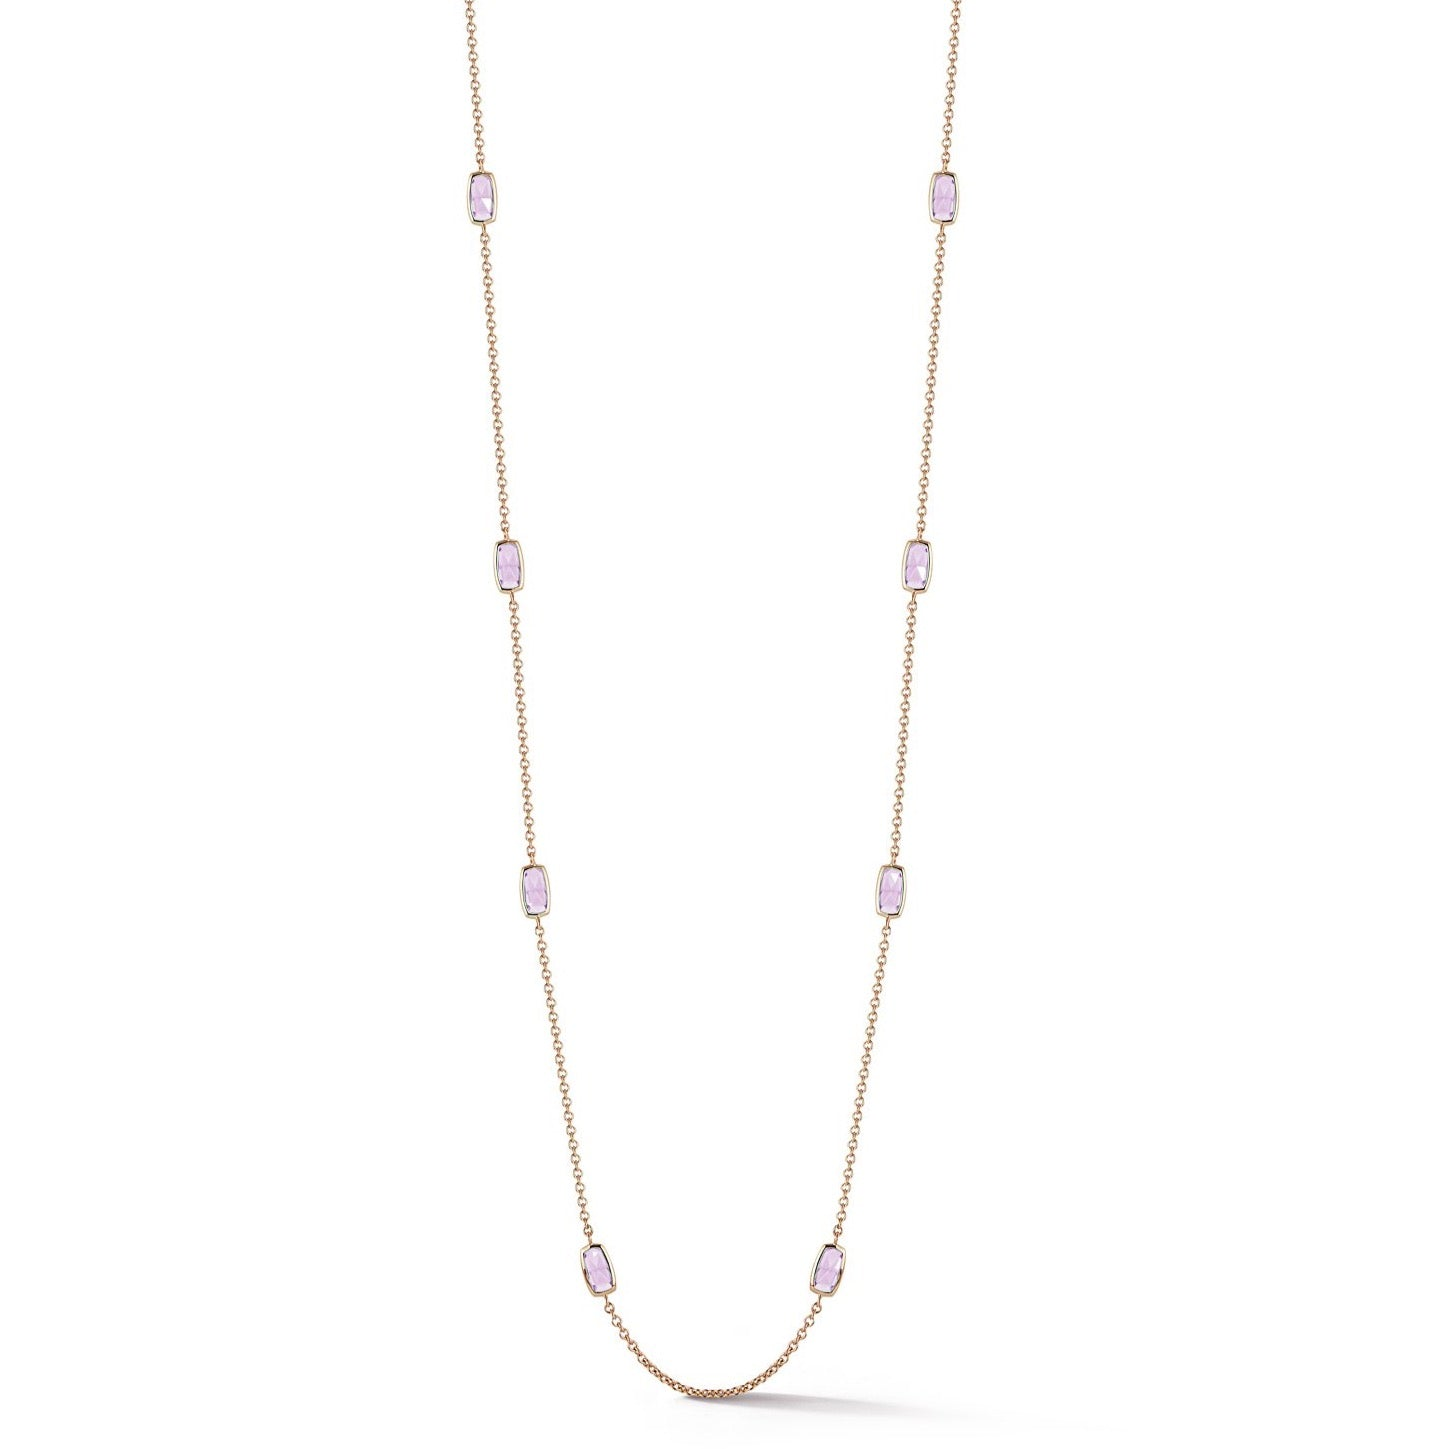 A-FURST-GAIA-LONG-STATION-NECKLACE-ROSE-DE-FRANCE-ROSE-GOLD-C1708RRF-36_LR